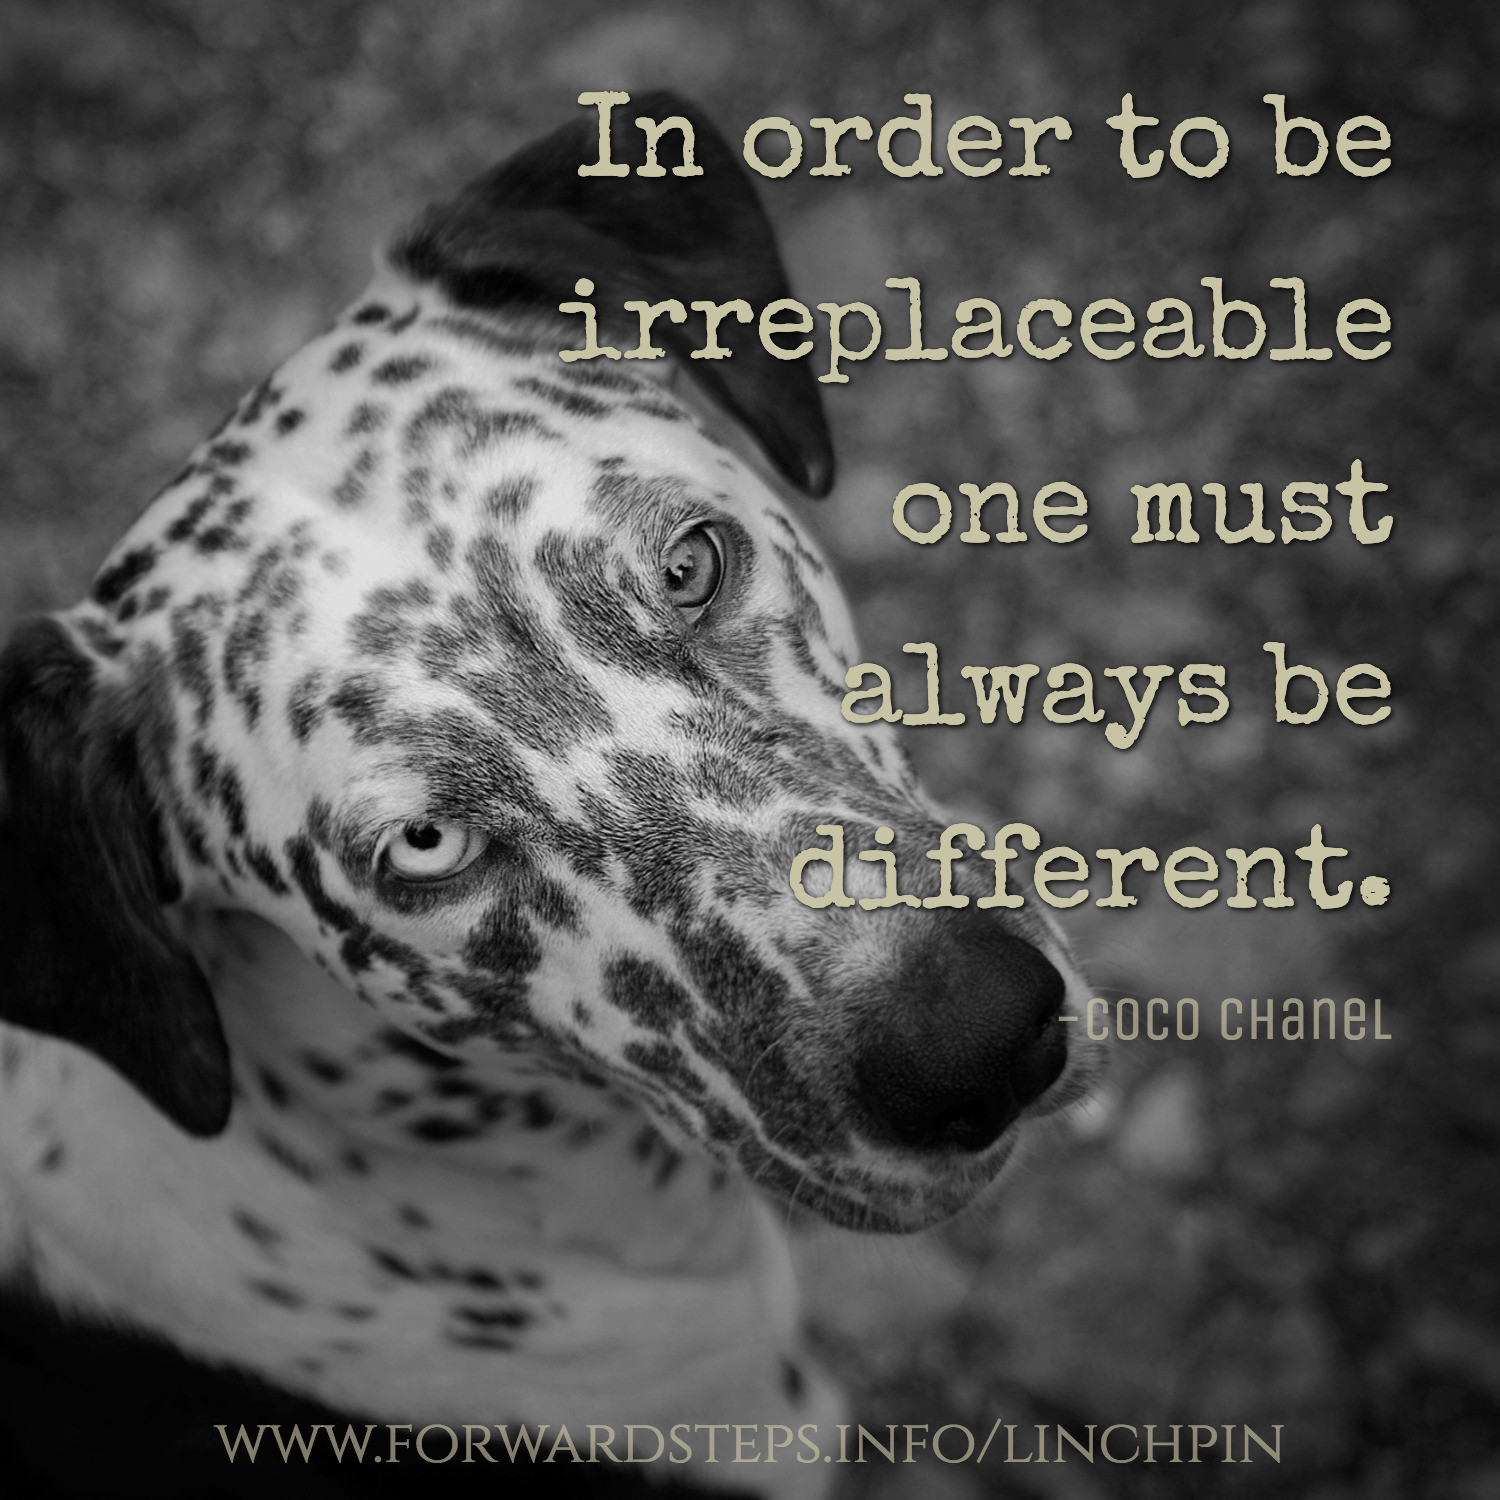 Be irreplaceable article image 1 1500